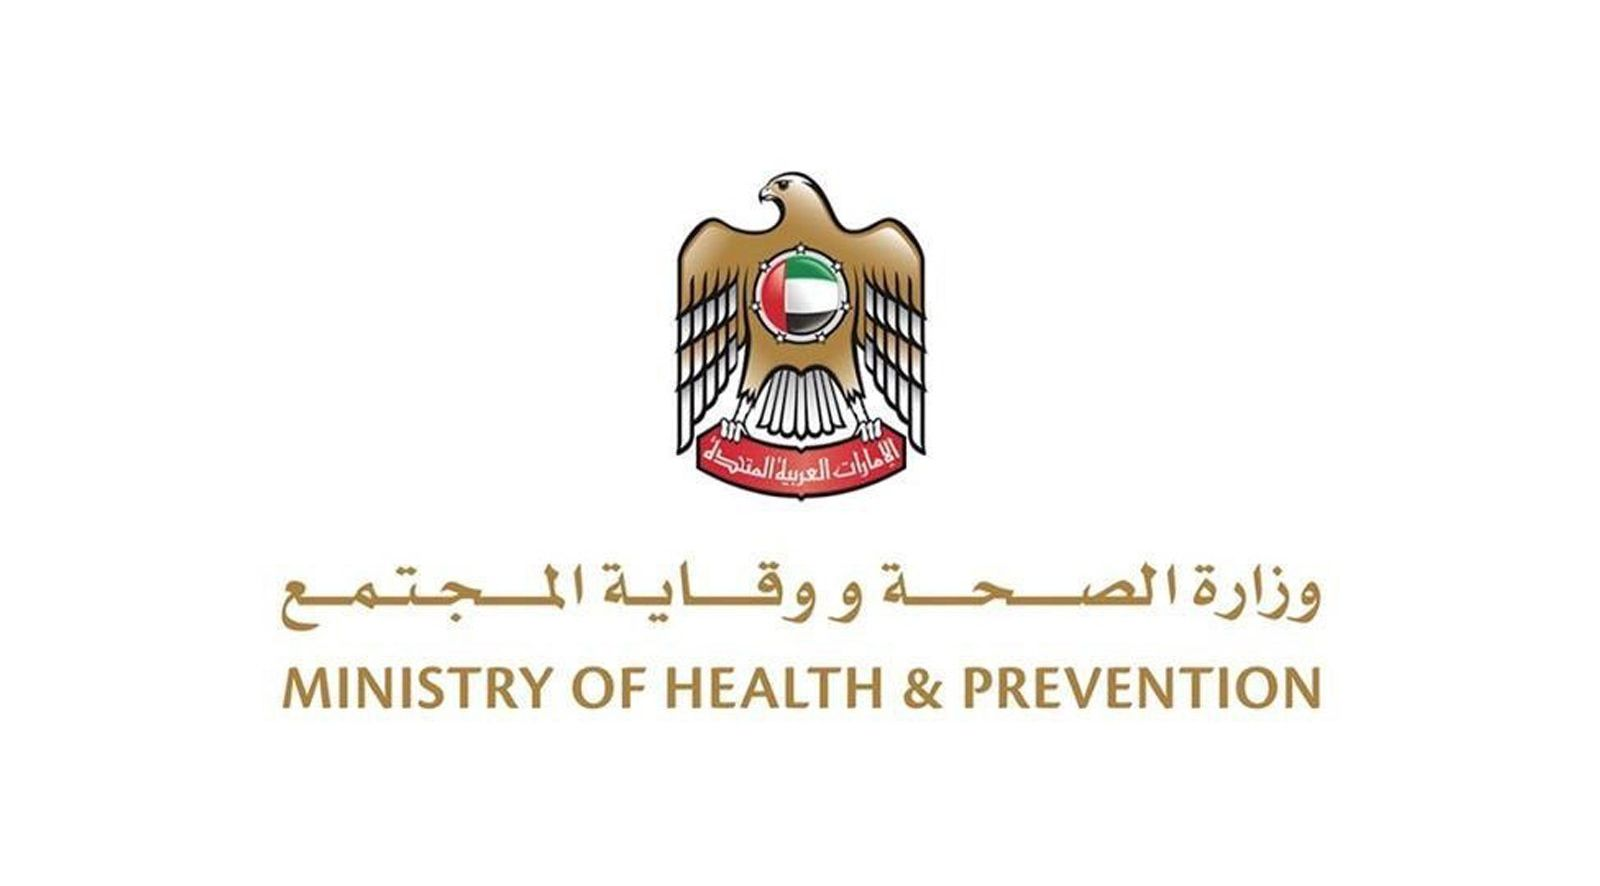 MOHAP allows COVID-19 vaccine for UAE citizens, residents